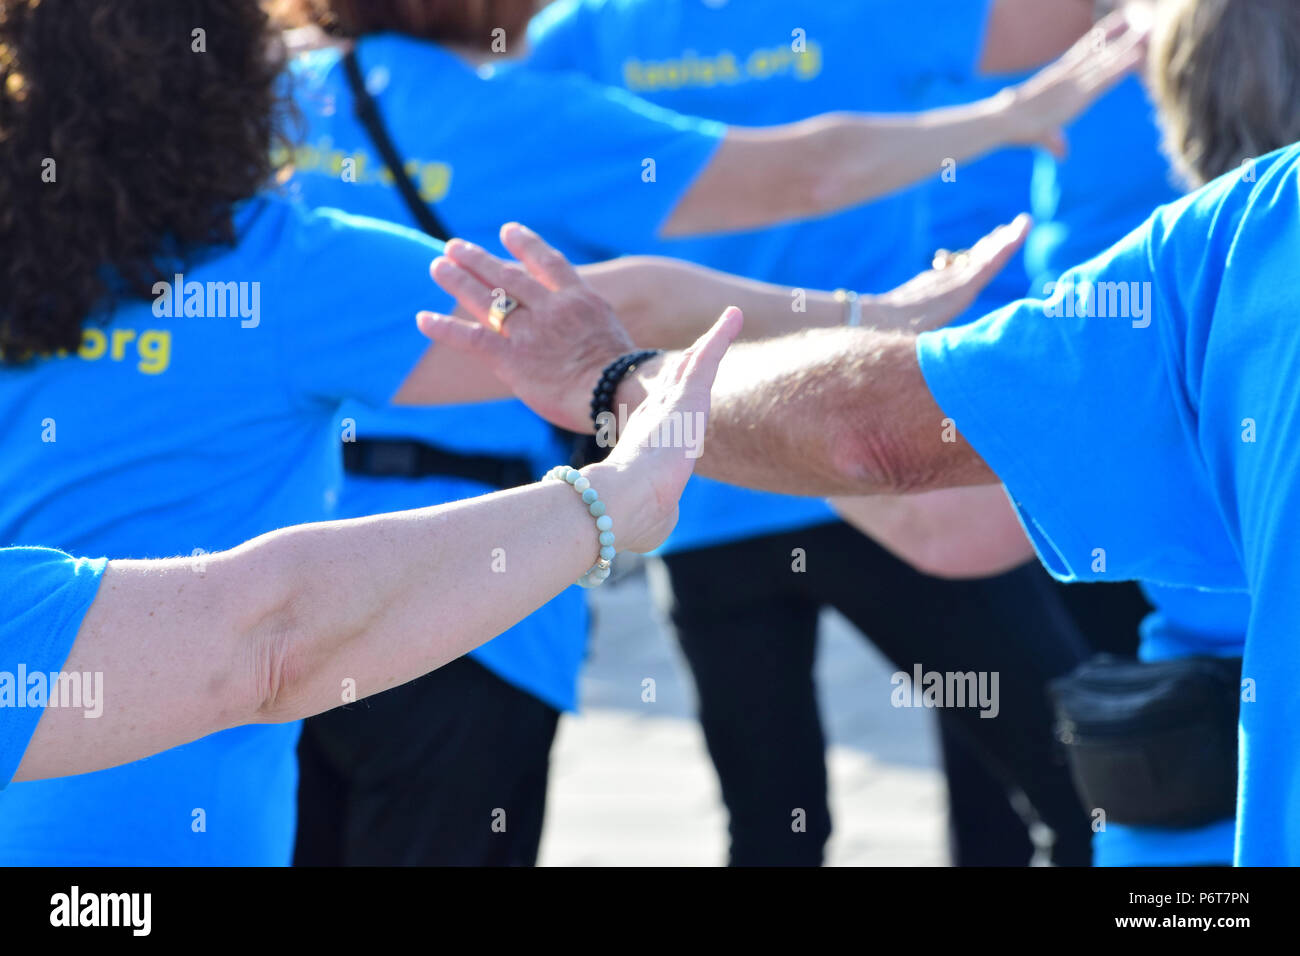 Fung loy kok taoist tai chi 2018 international gathering in Gaspé, Québec - Stock Image